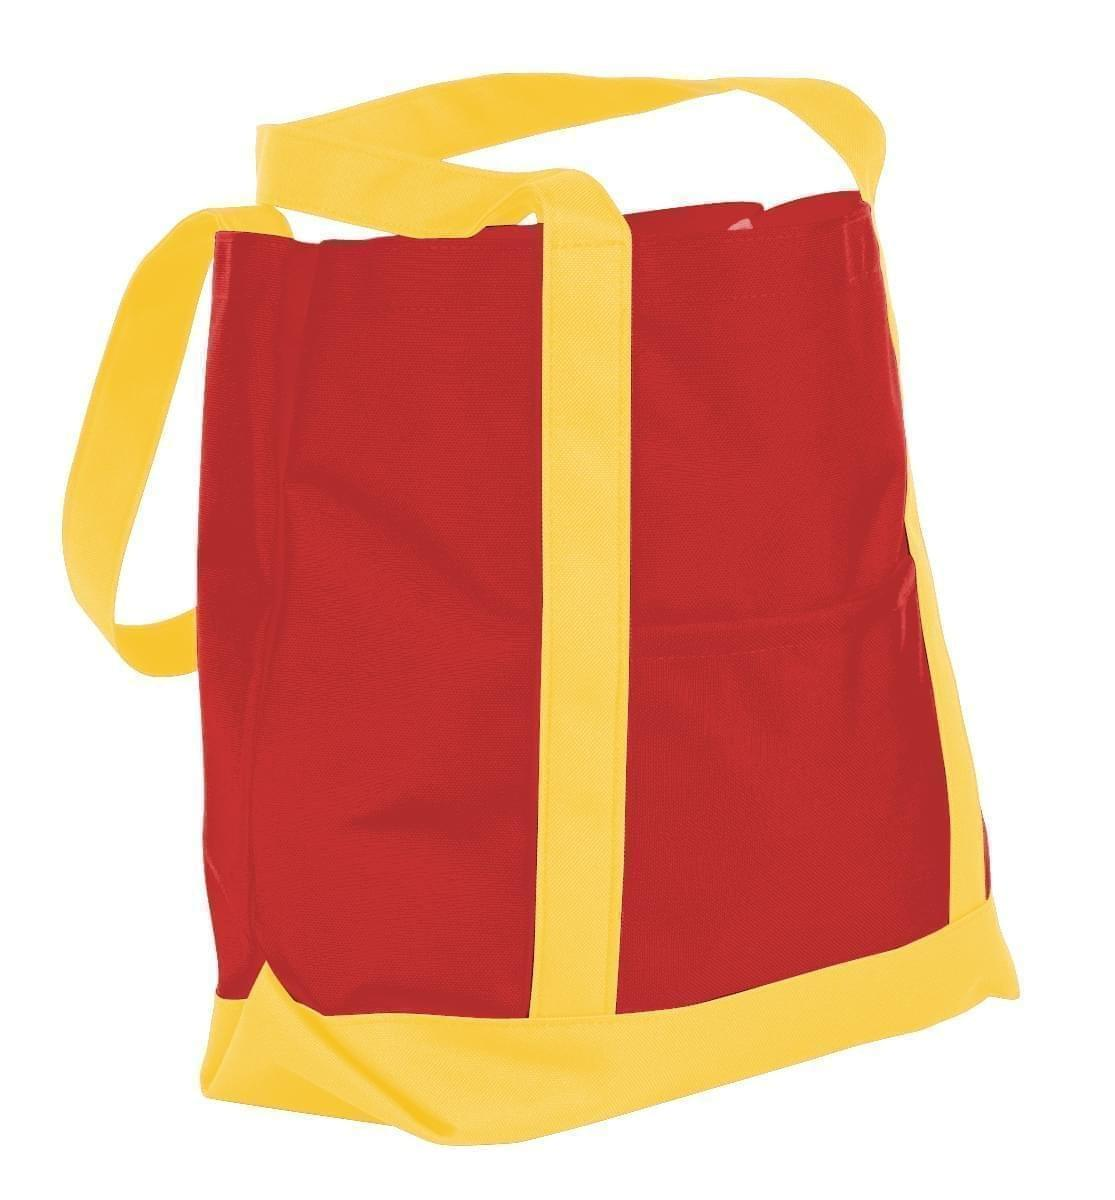 USA Made Nylon Poly Boat Tote Bags, Red-Gold, XAACL1UAZQ